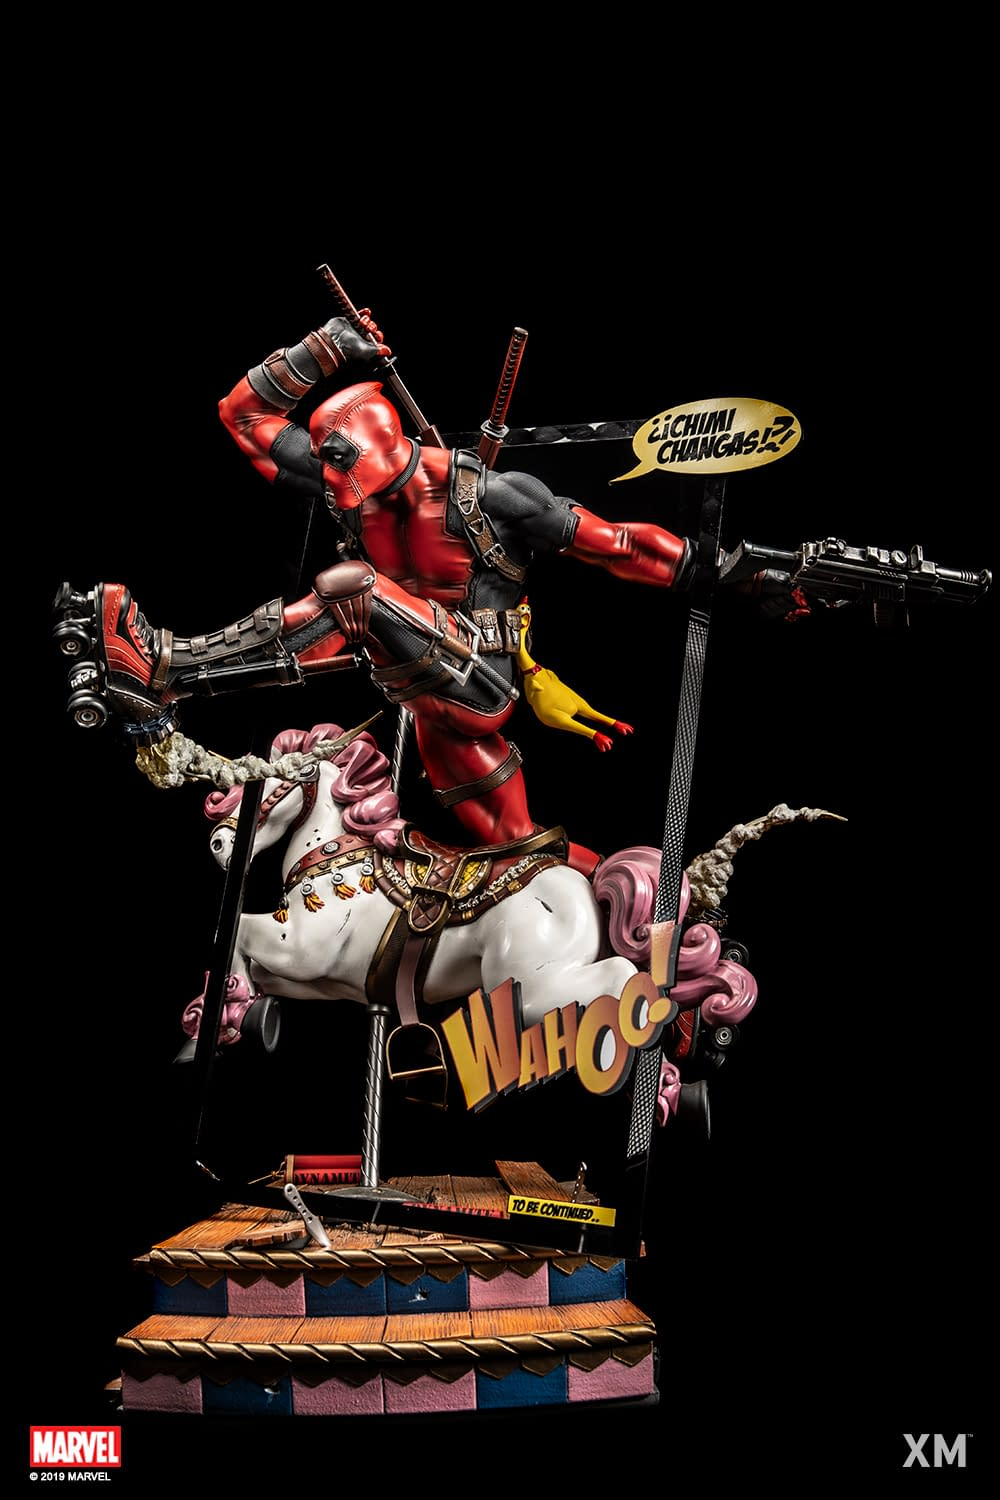 Deadpool Gets a Magically Hand-Crafted Statue from XM Studios